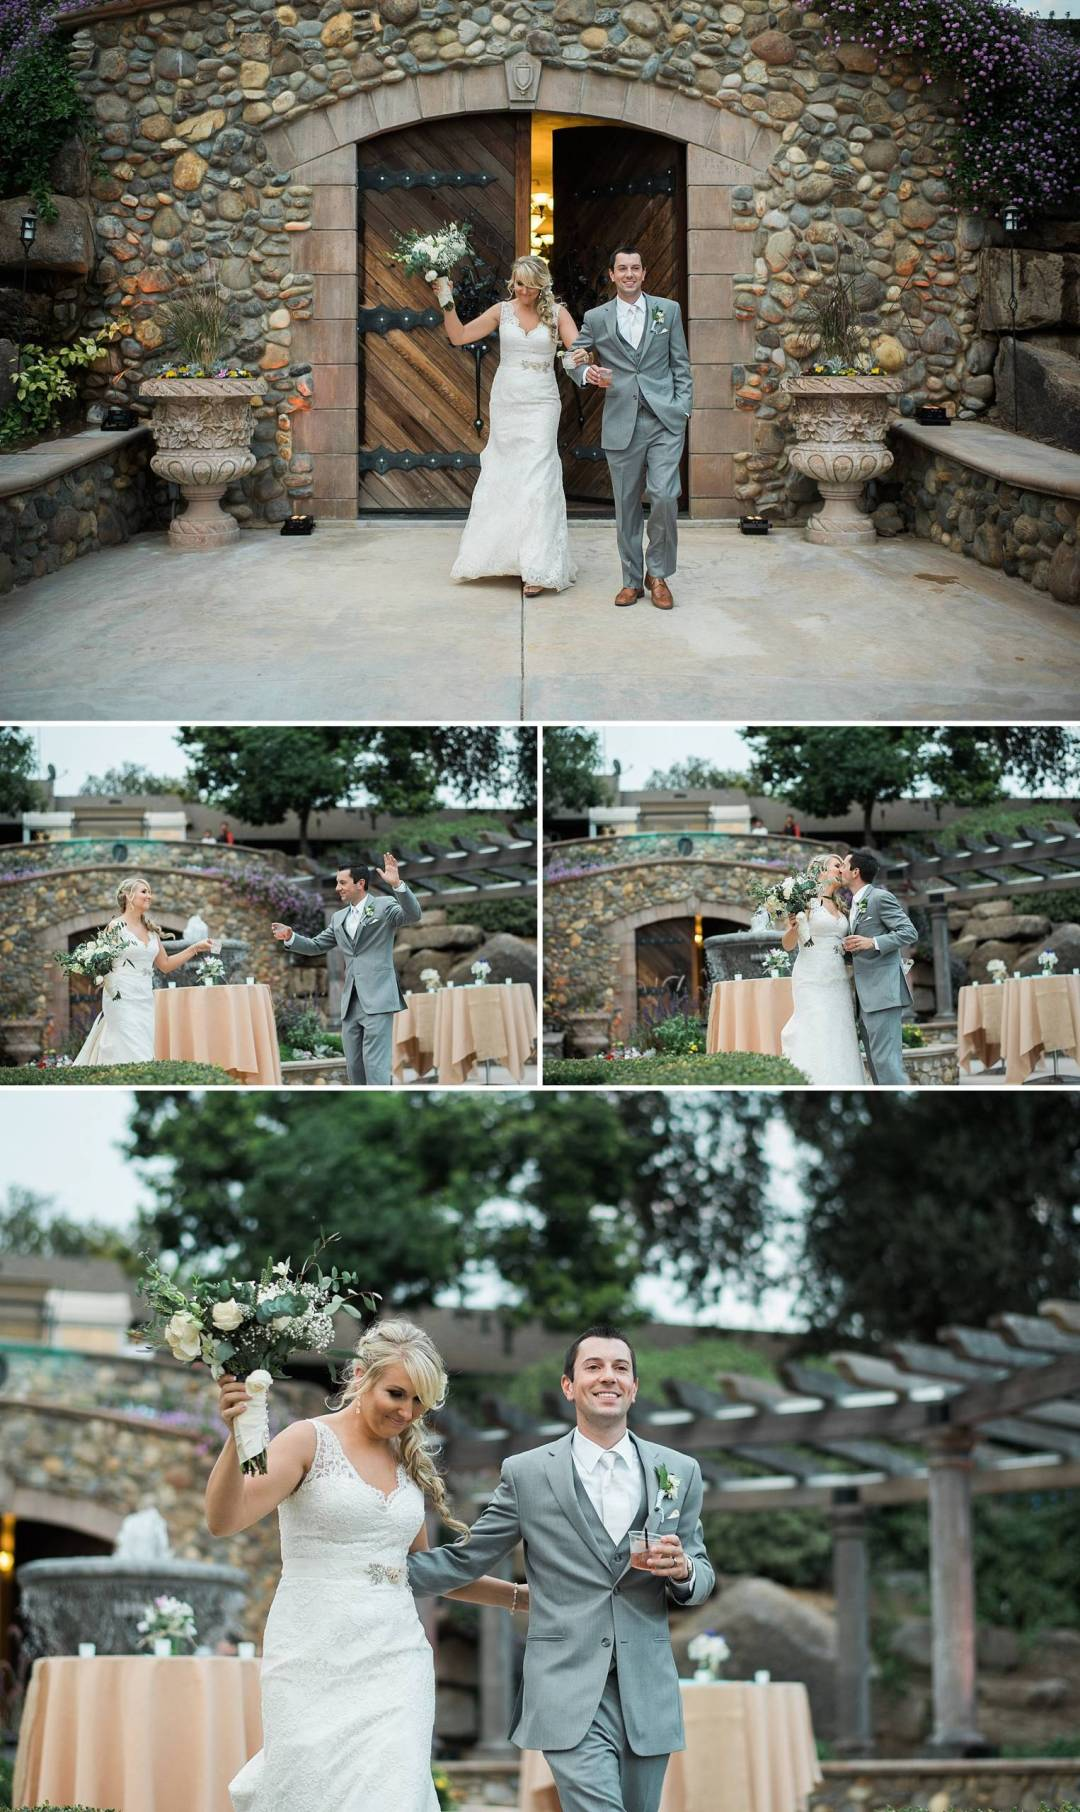 Erin + Marcel Third Element Photography & Cinema Fresno County Estate Wedding Hybrid Film Wedding Photographer_0047